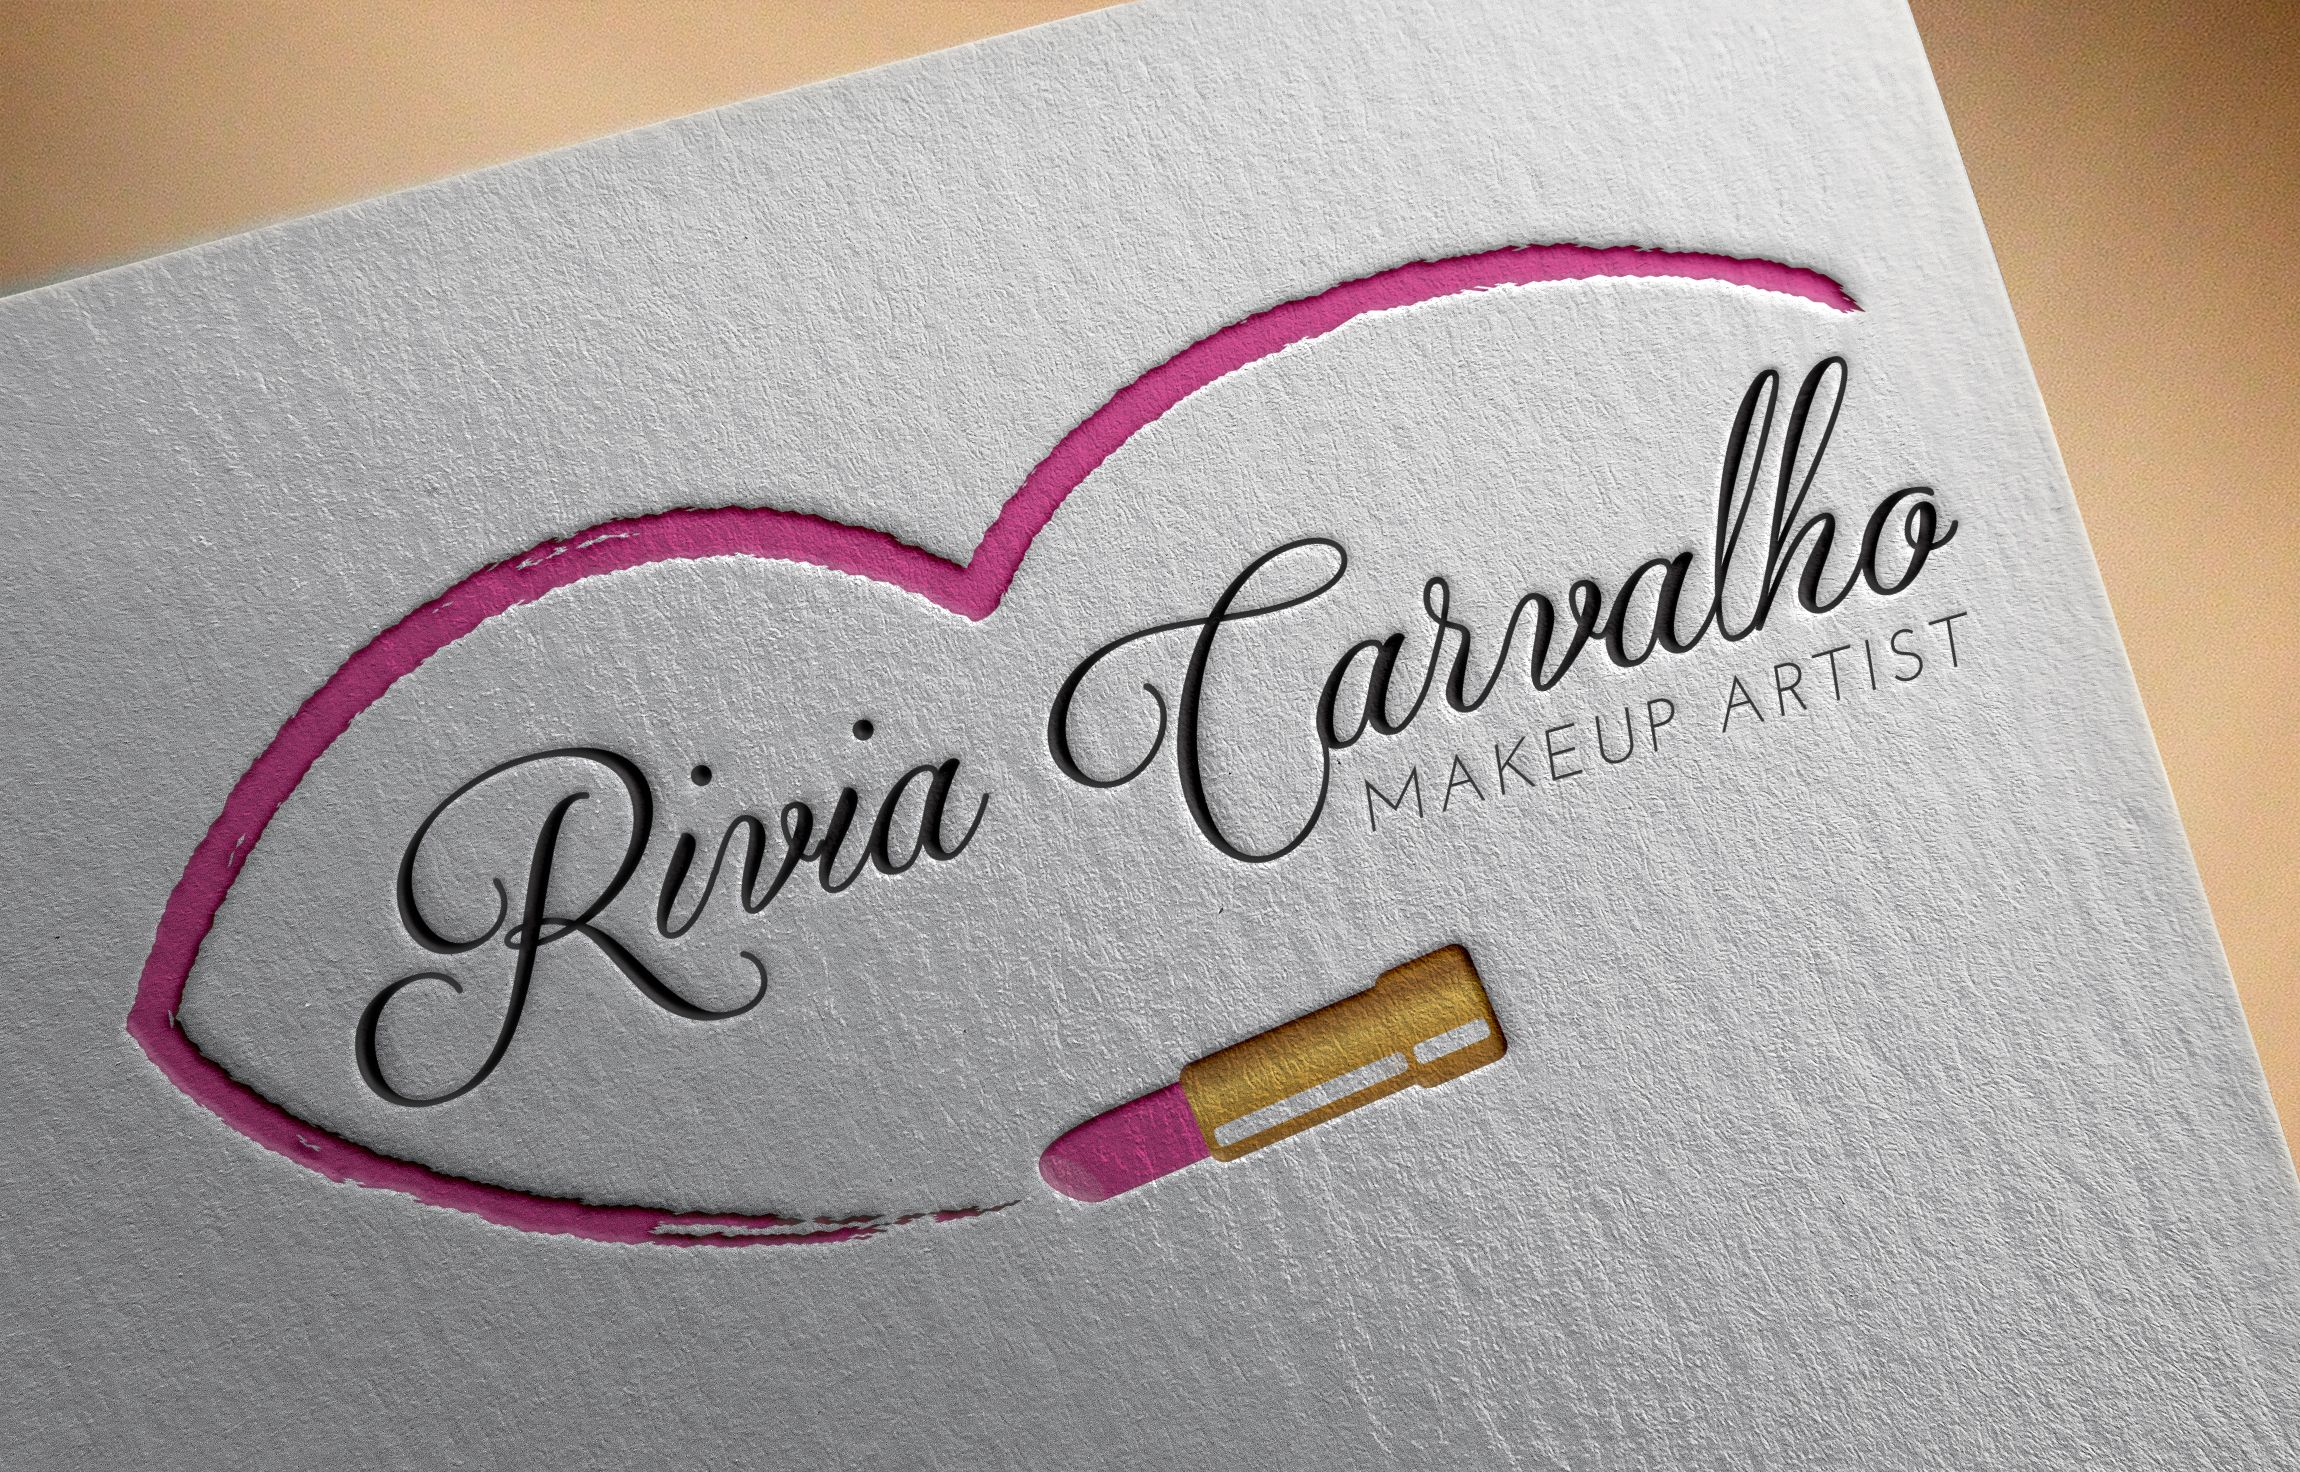 Logo I made for Makeup artist Rivia Carvalho. Contact me